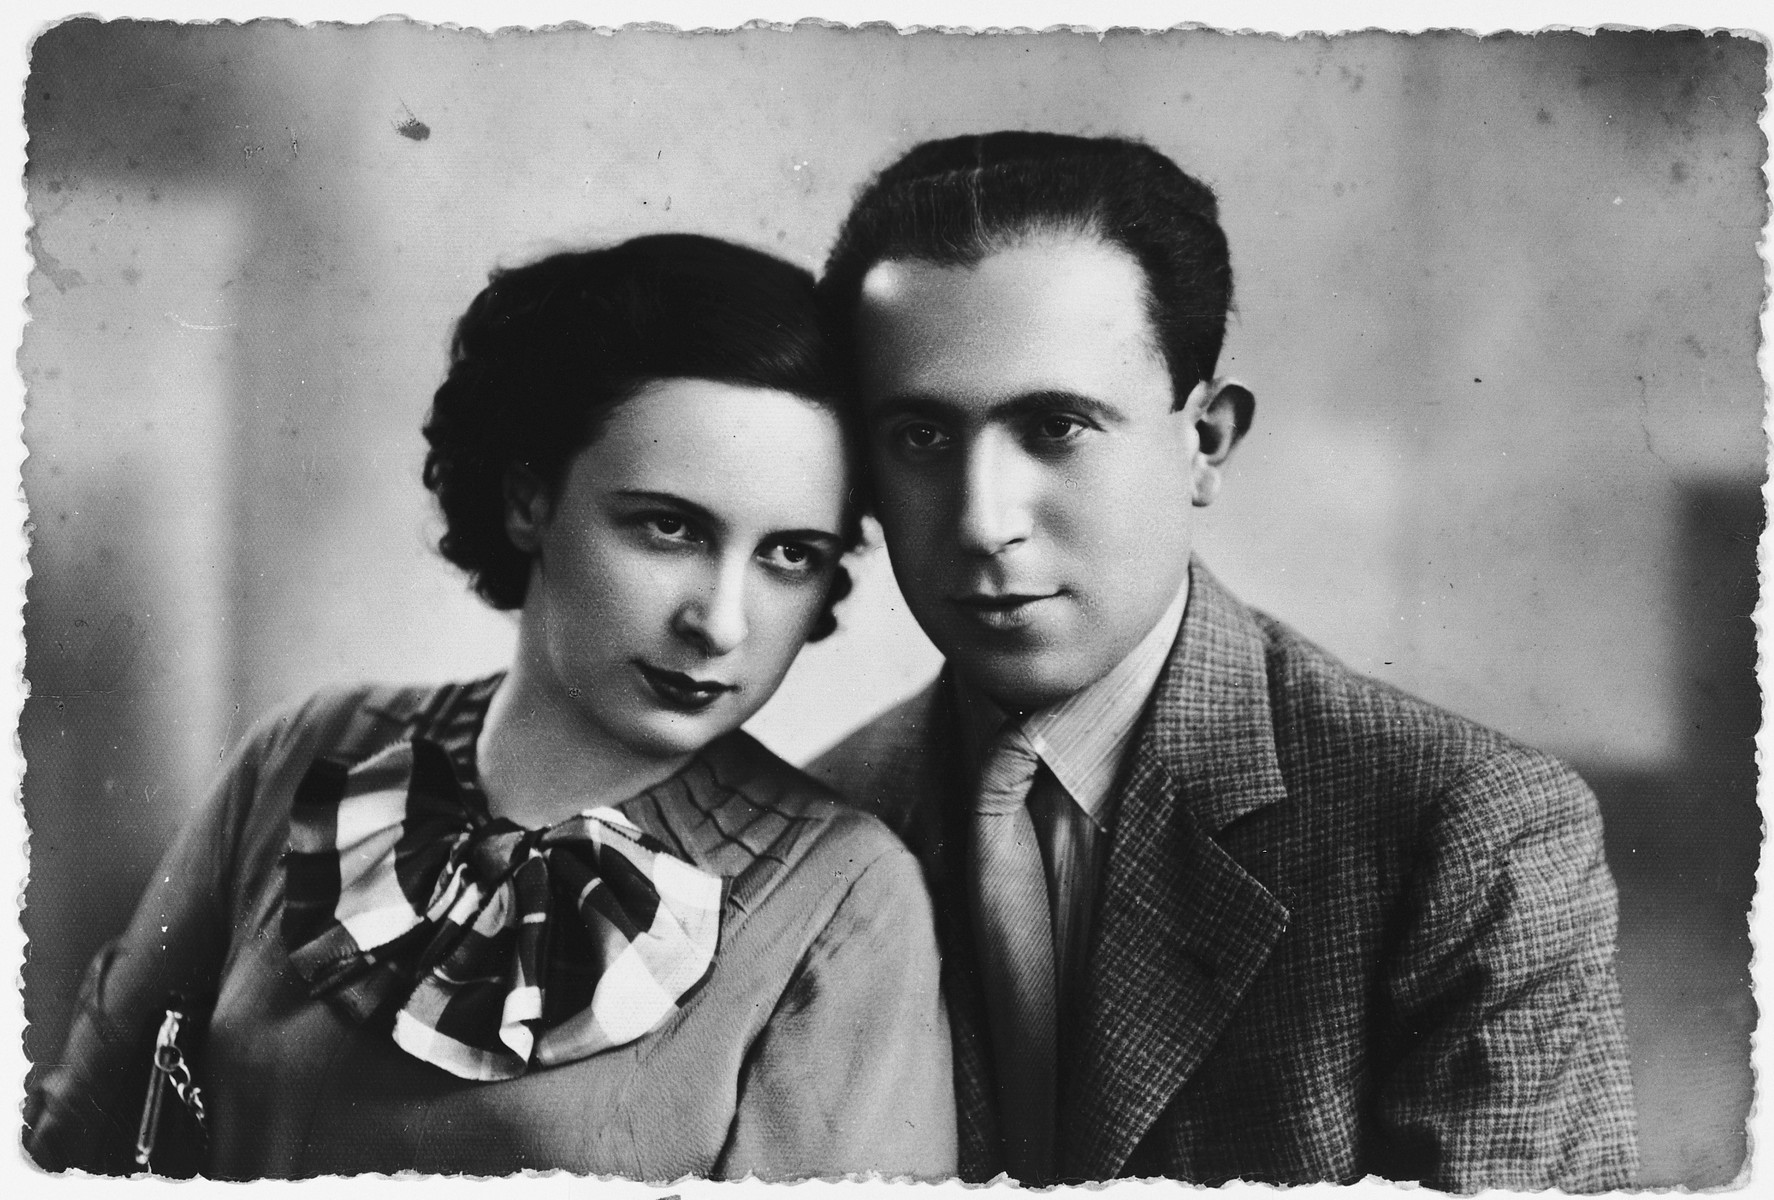 Studio portrait of a Jewish couple in Vilna.  Pictured are Hirsh and Emma Telerant.